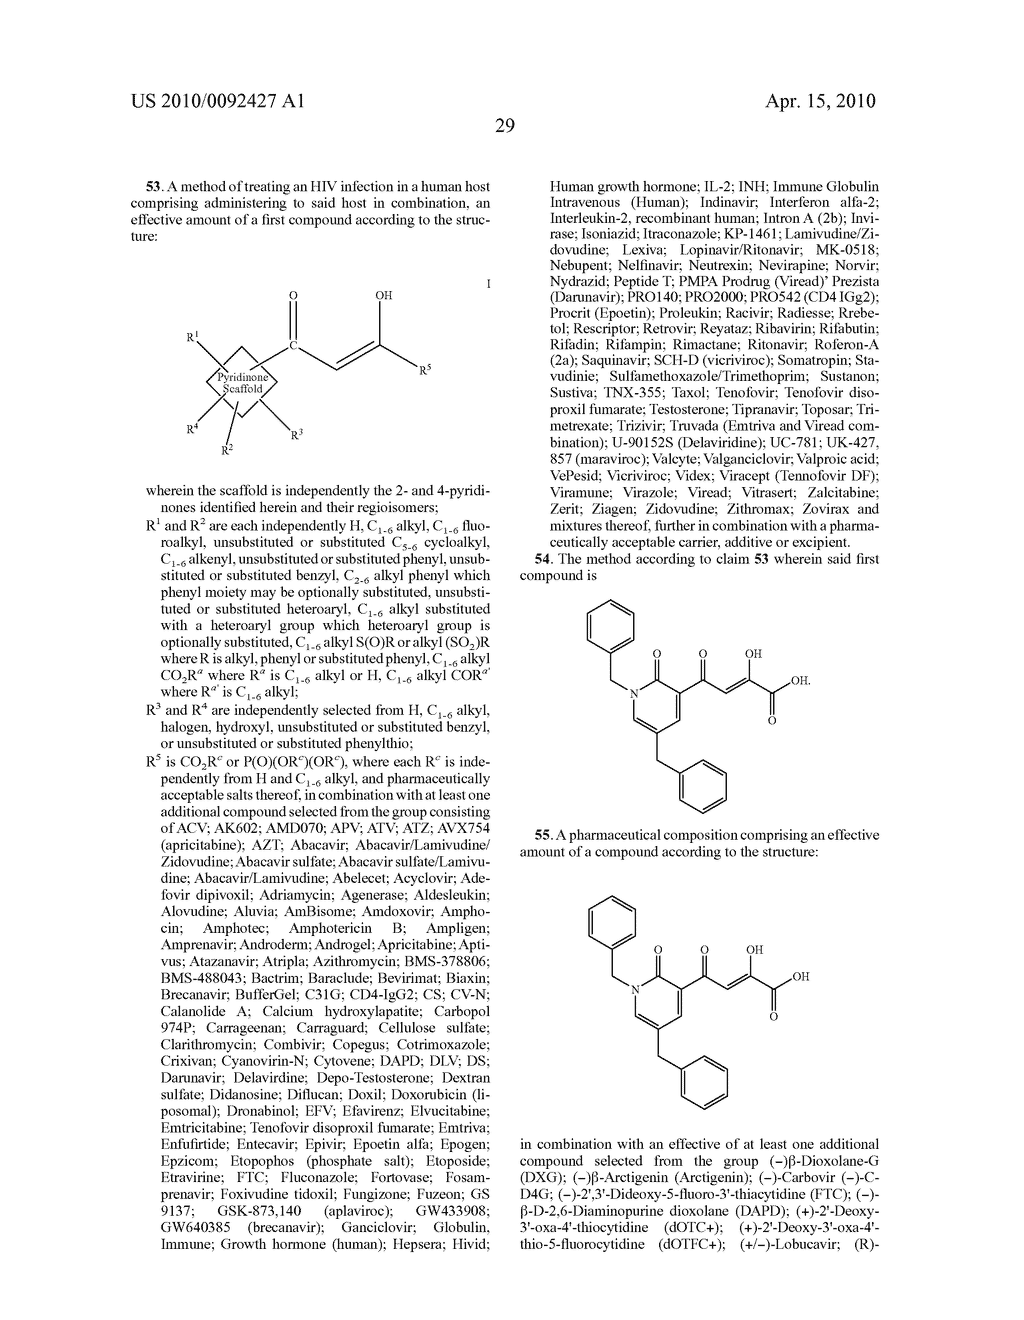 Pyridinone Diketo Acids: Inhibitors of HIV Replication in Combination Therapy - diagram, schematic, and image 30